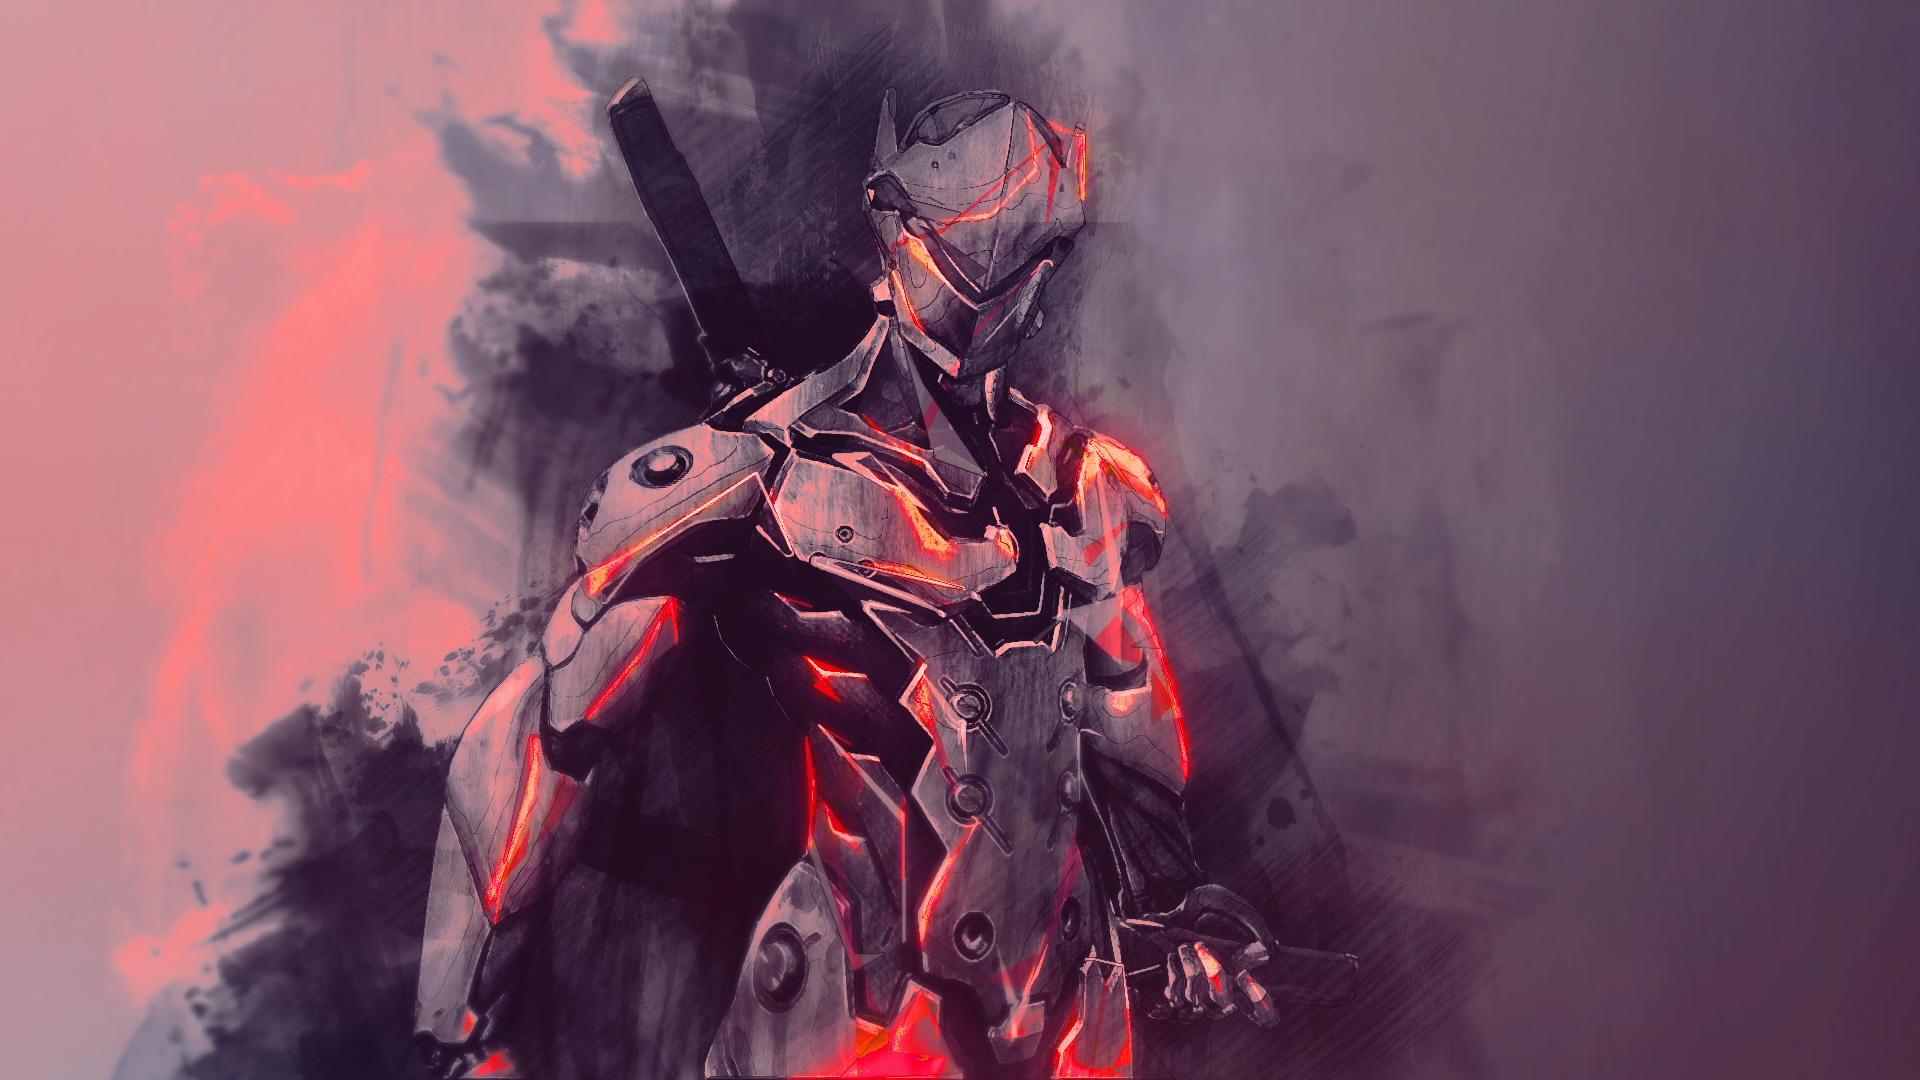 Red Genji Wallpaper Hd Wallpaper Background Image 1920x1080 Id